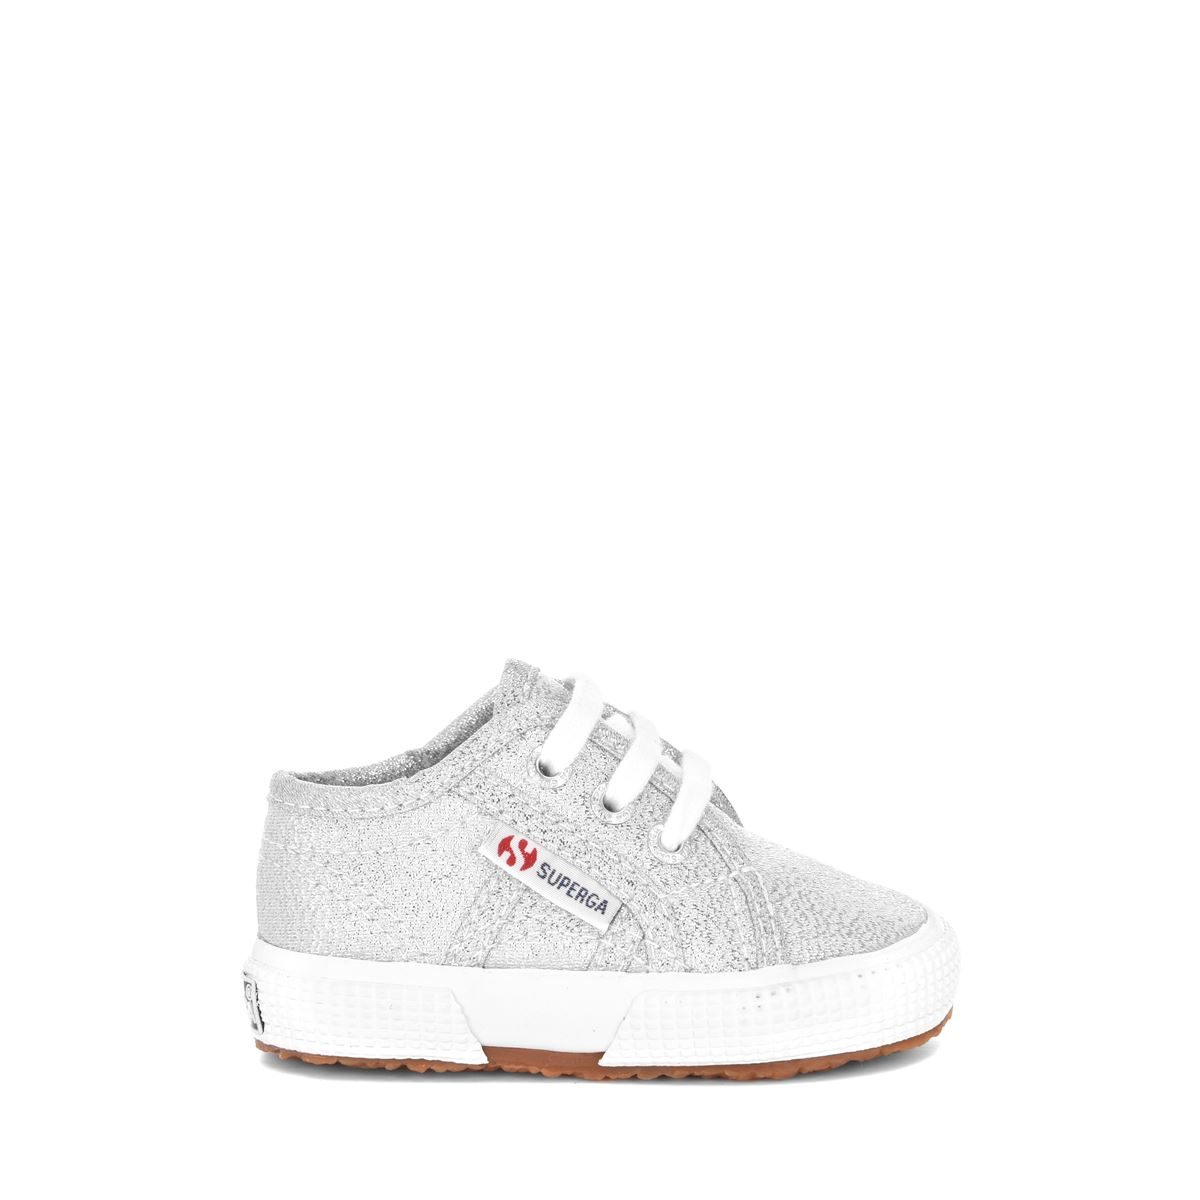 Italian Le Superga Superga for kid men and women-S0028T0